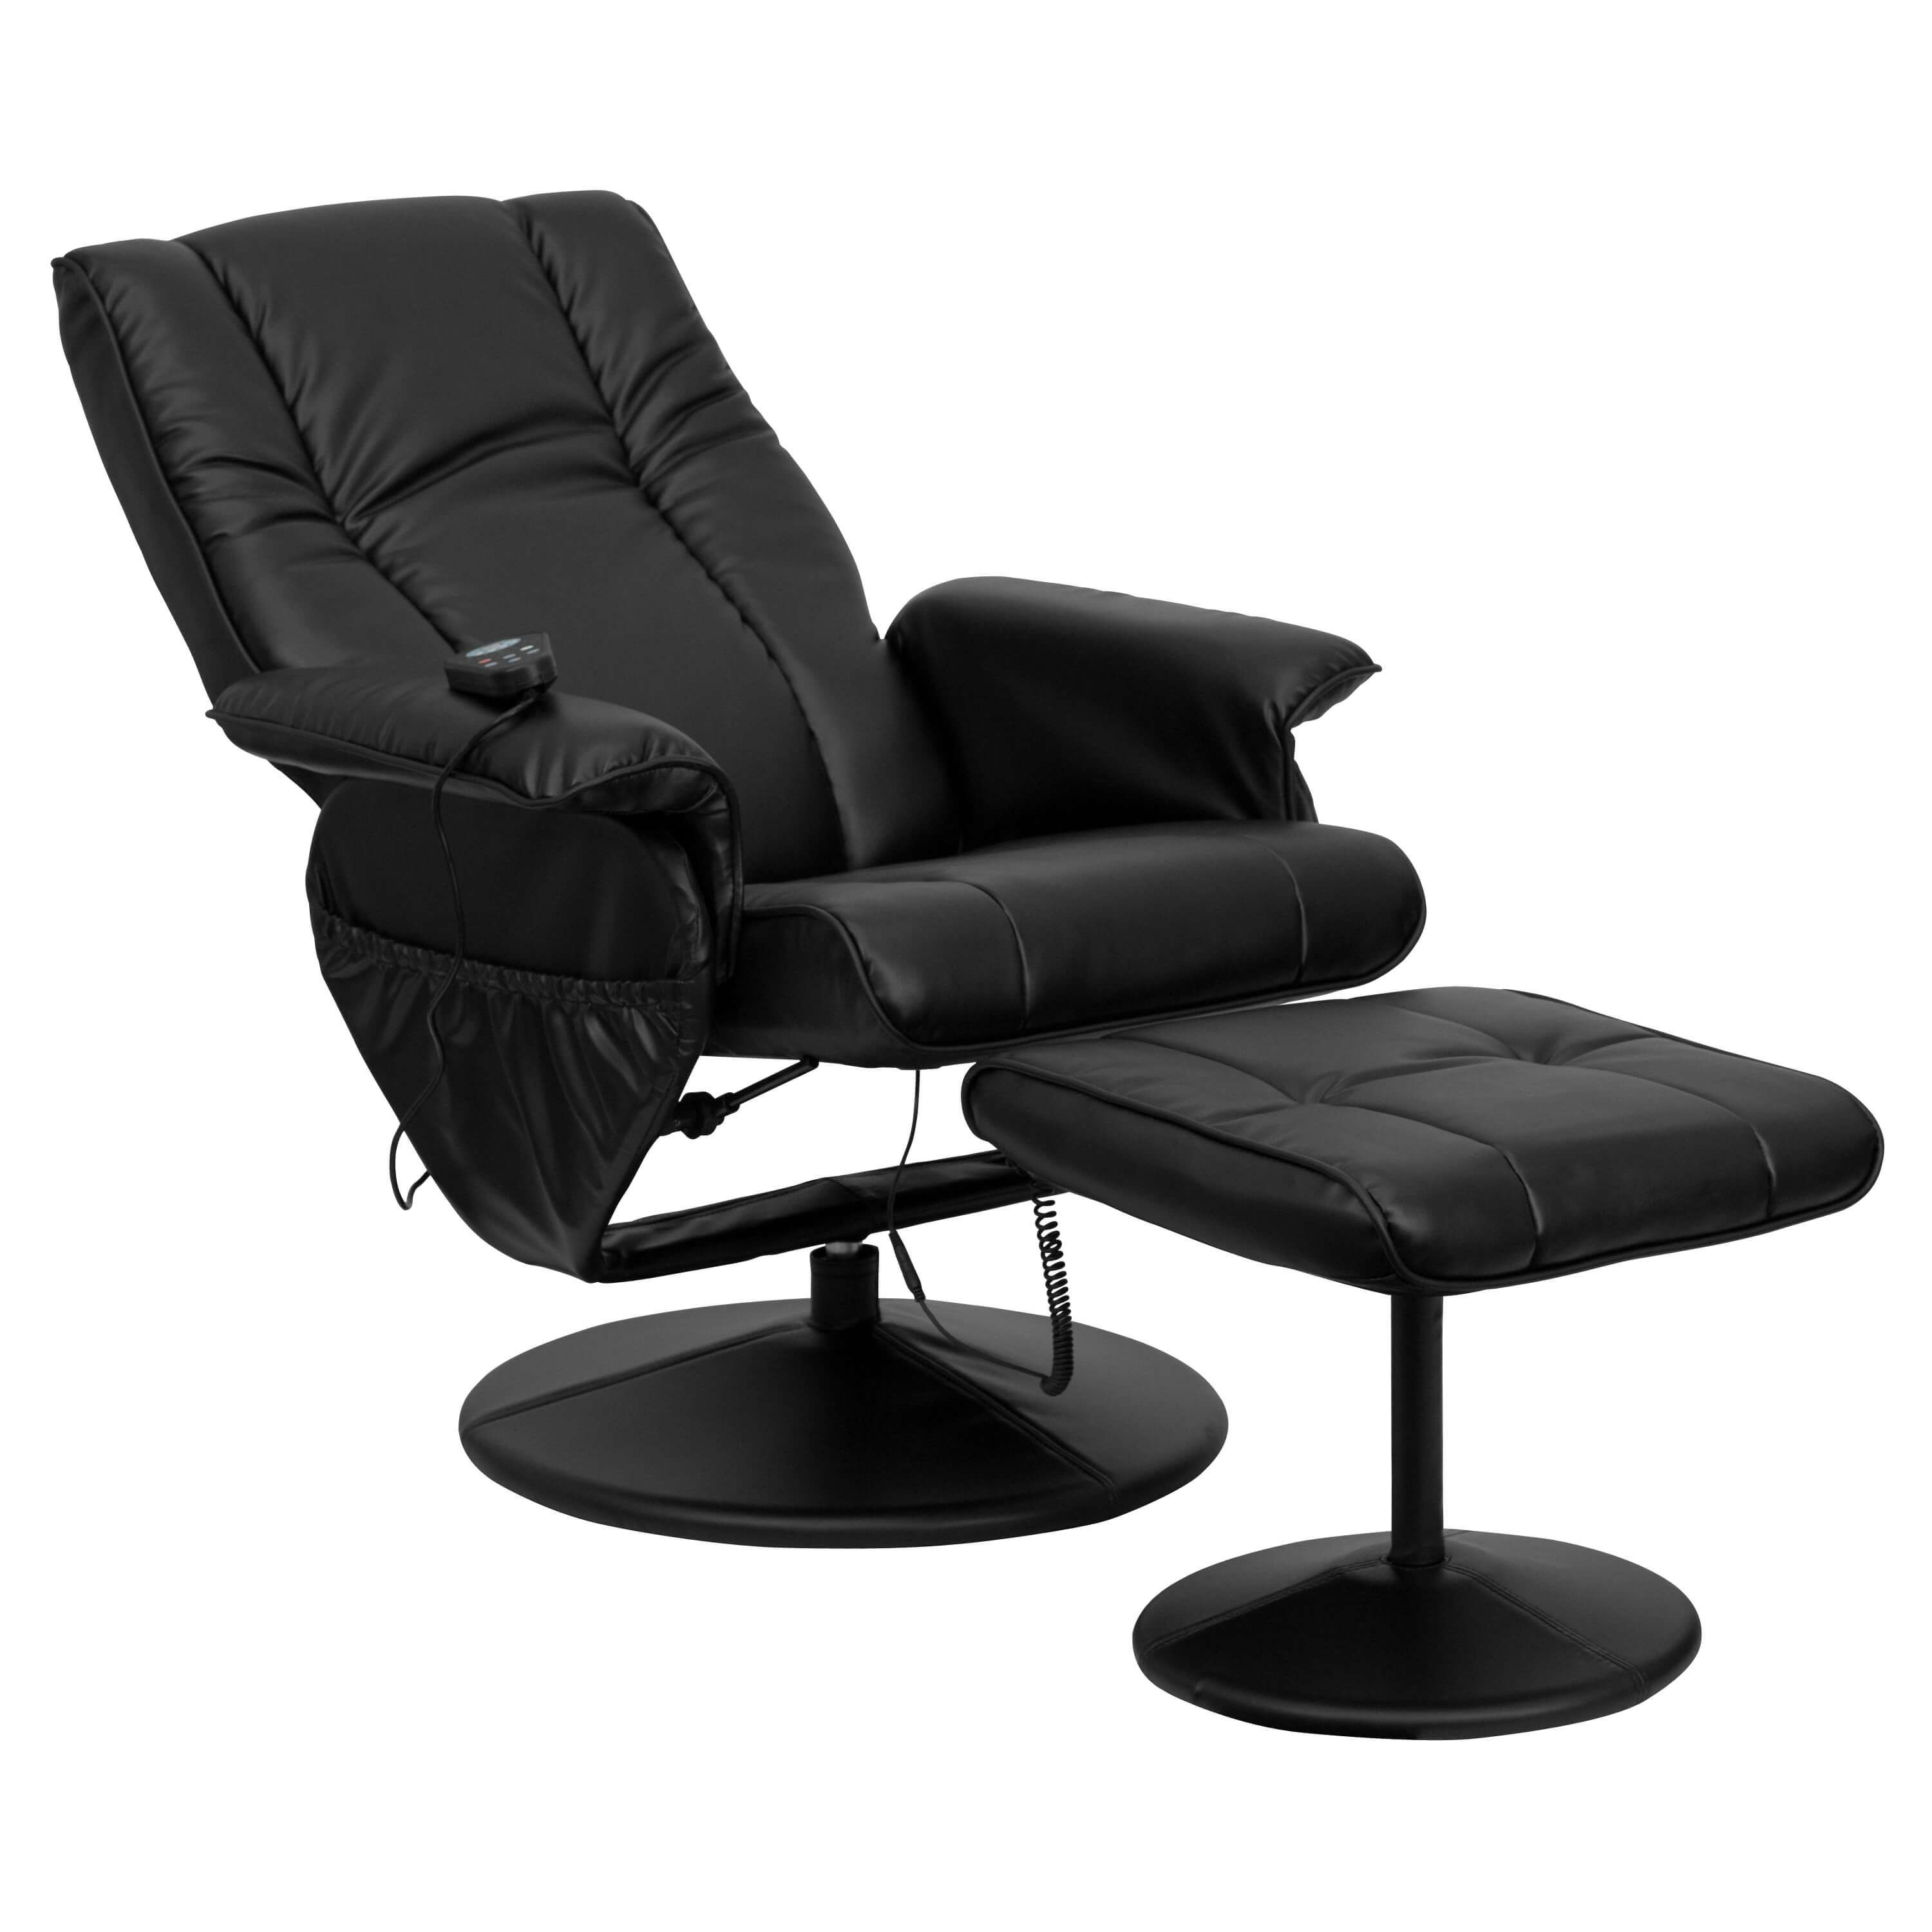 Recliner massage chair reclined view